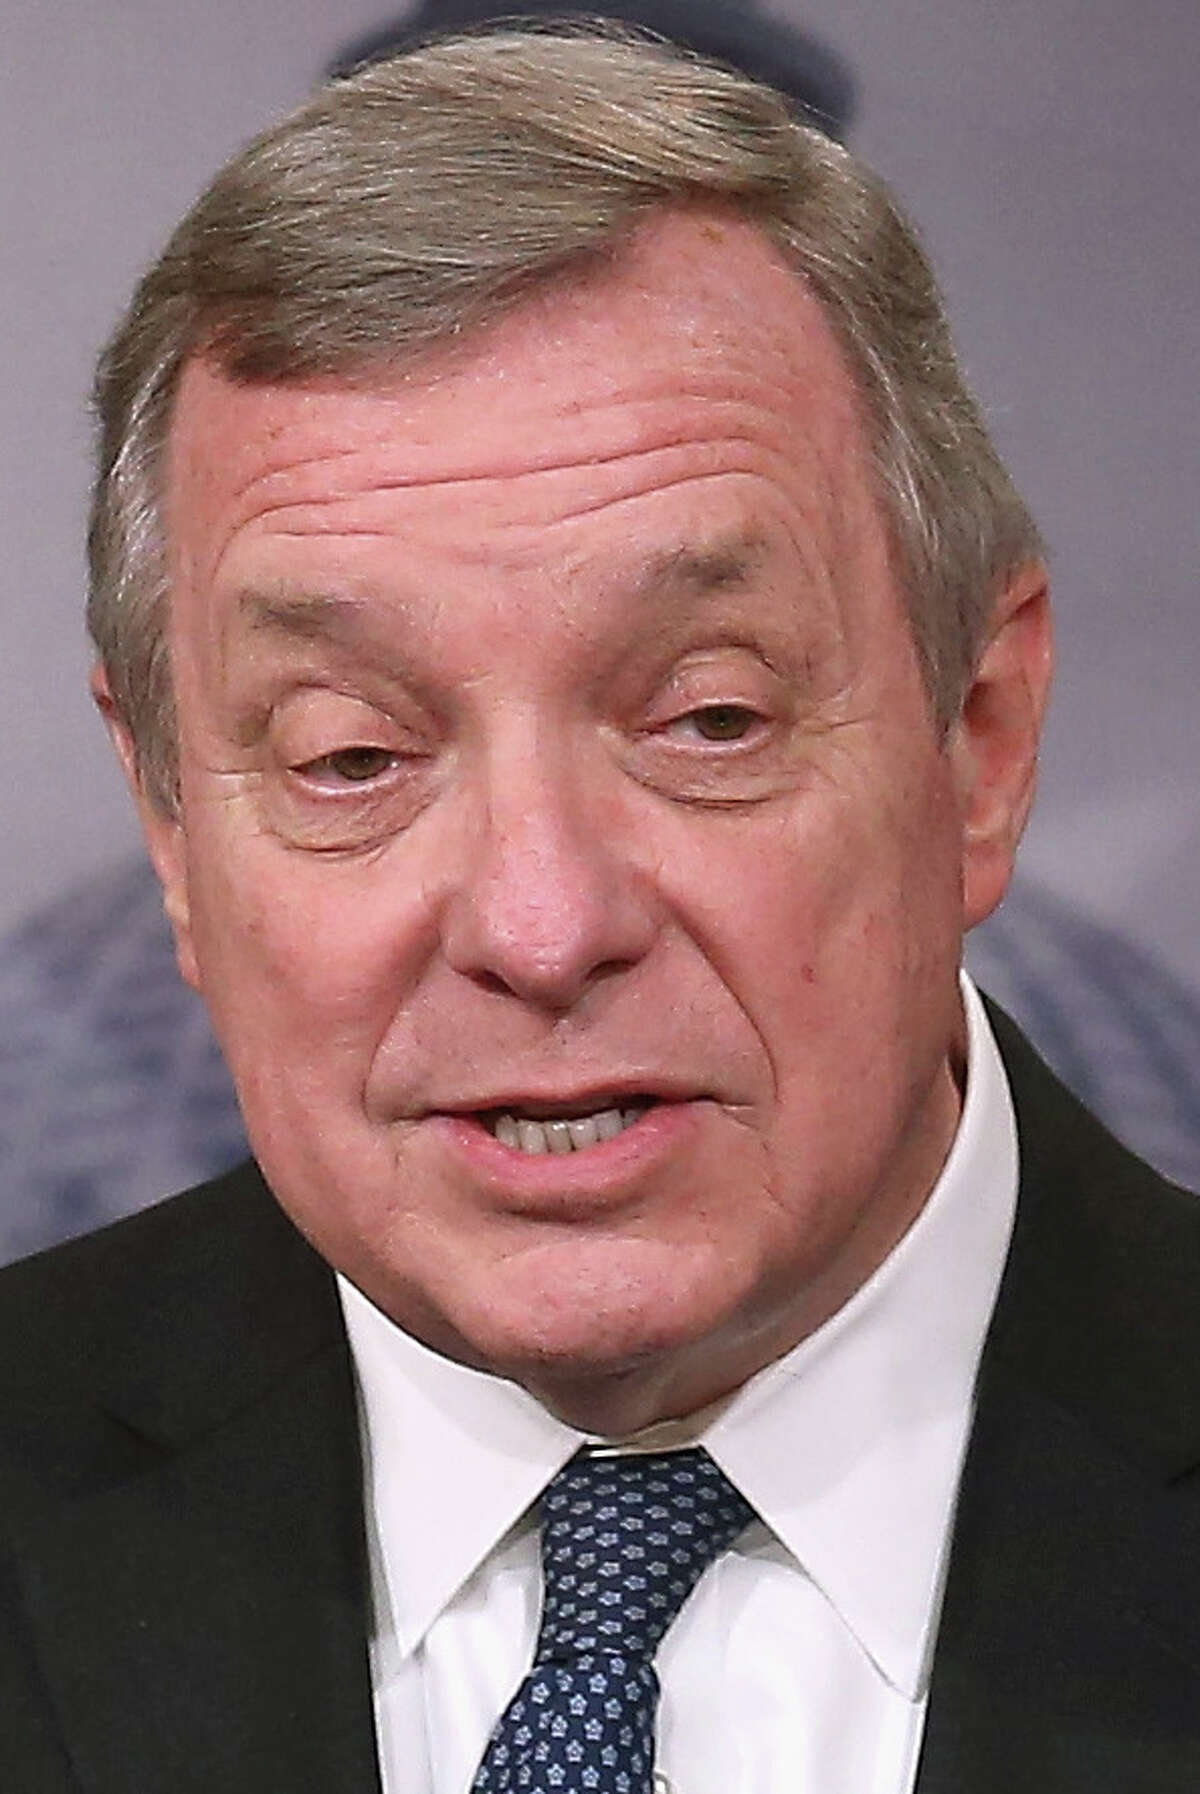 Senate Assistant Minority Leader Dick Durbin, (D-IL) during a news conference on Capitol Hill, January 20, 2015 in Washington, DC.